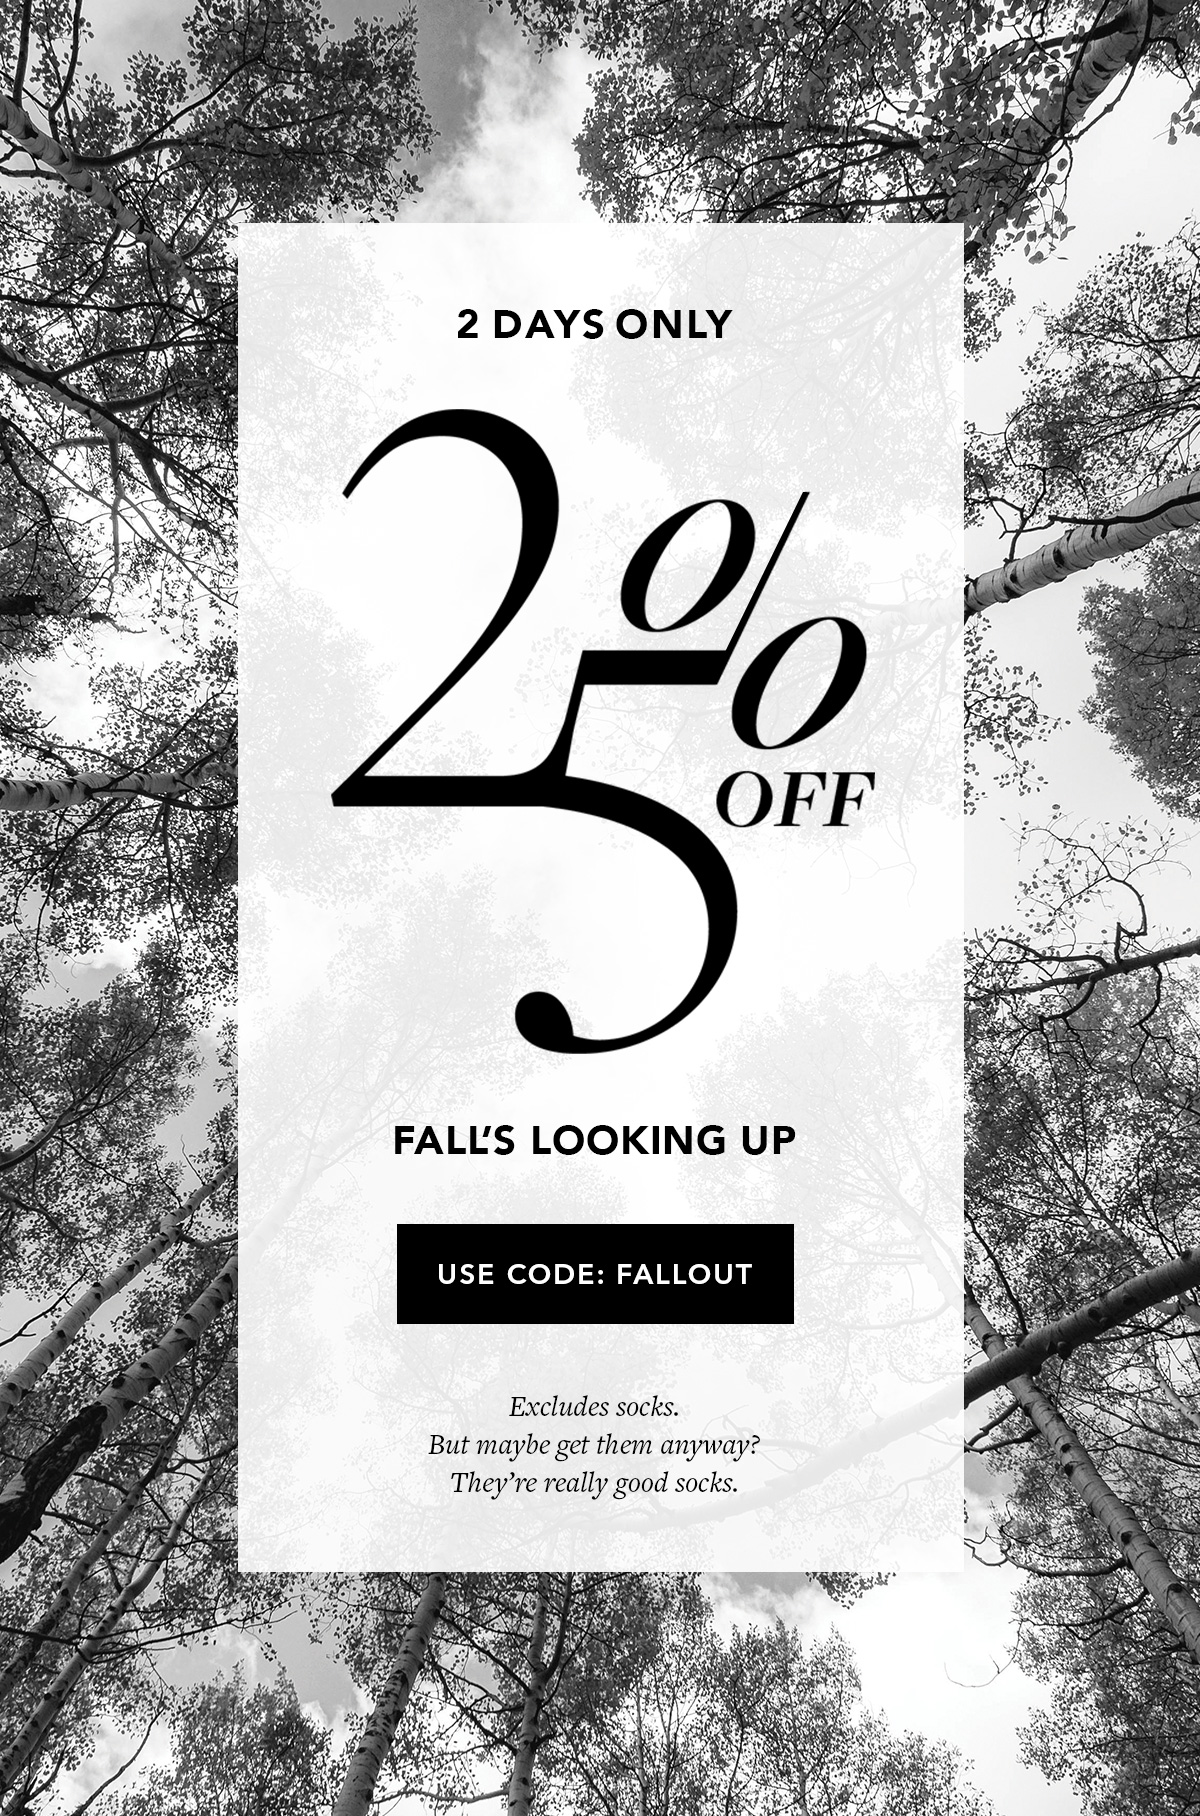 3 Days Only: Get 25% Off // Use Code: FALLOUT (Excludes socks. But maybe get them anyway? Theyre really good socks.)